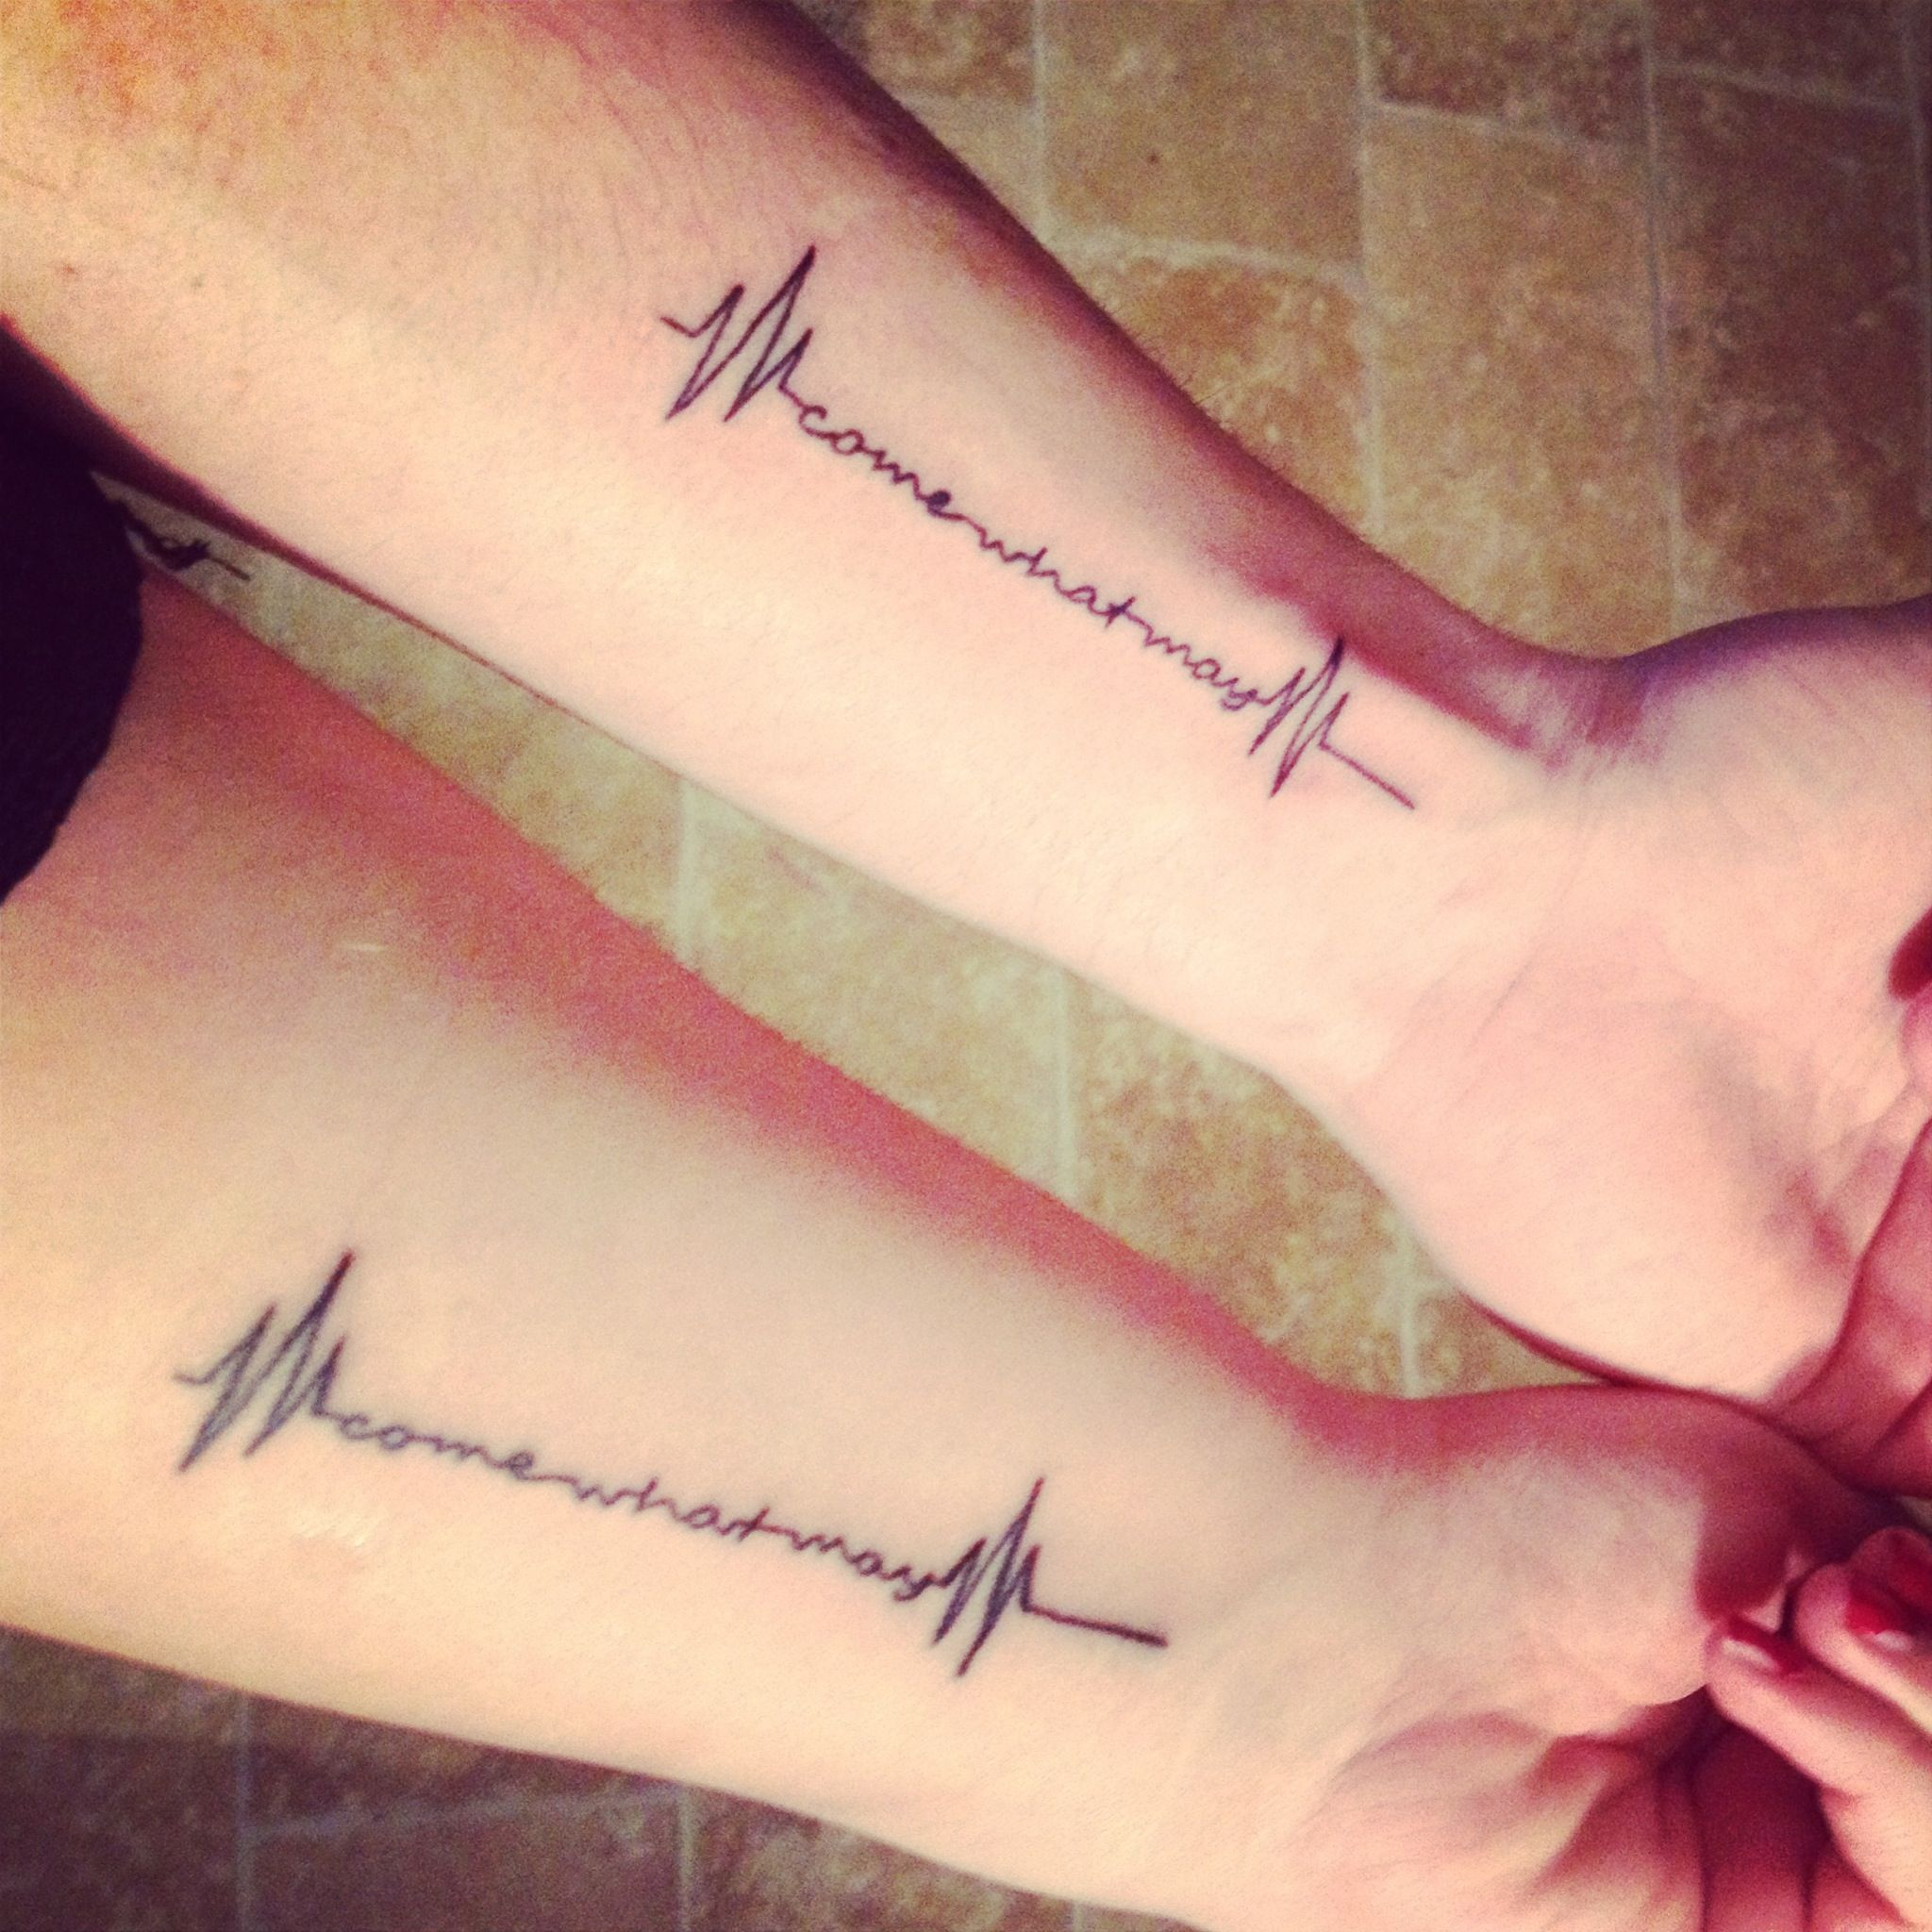 Small wrist tattoos design ideas to make you jealous ecstasycoffee - Our Wedding Song In Tattoo Form